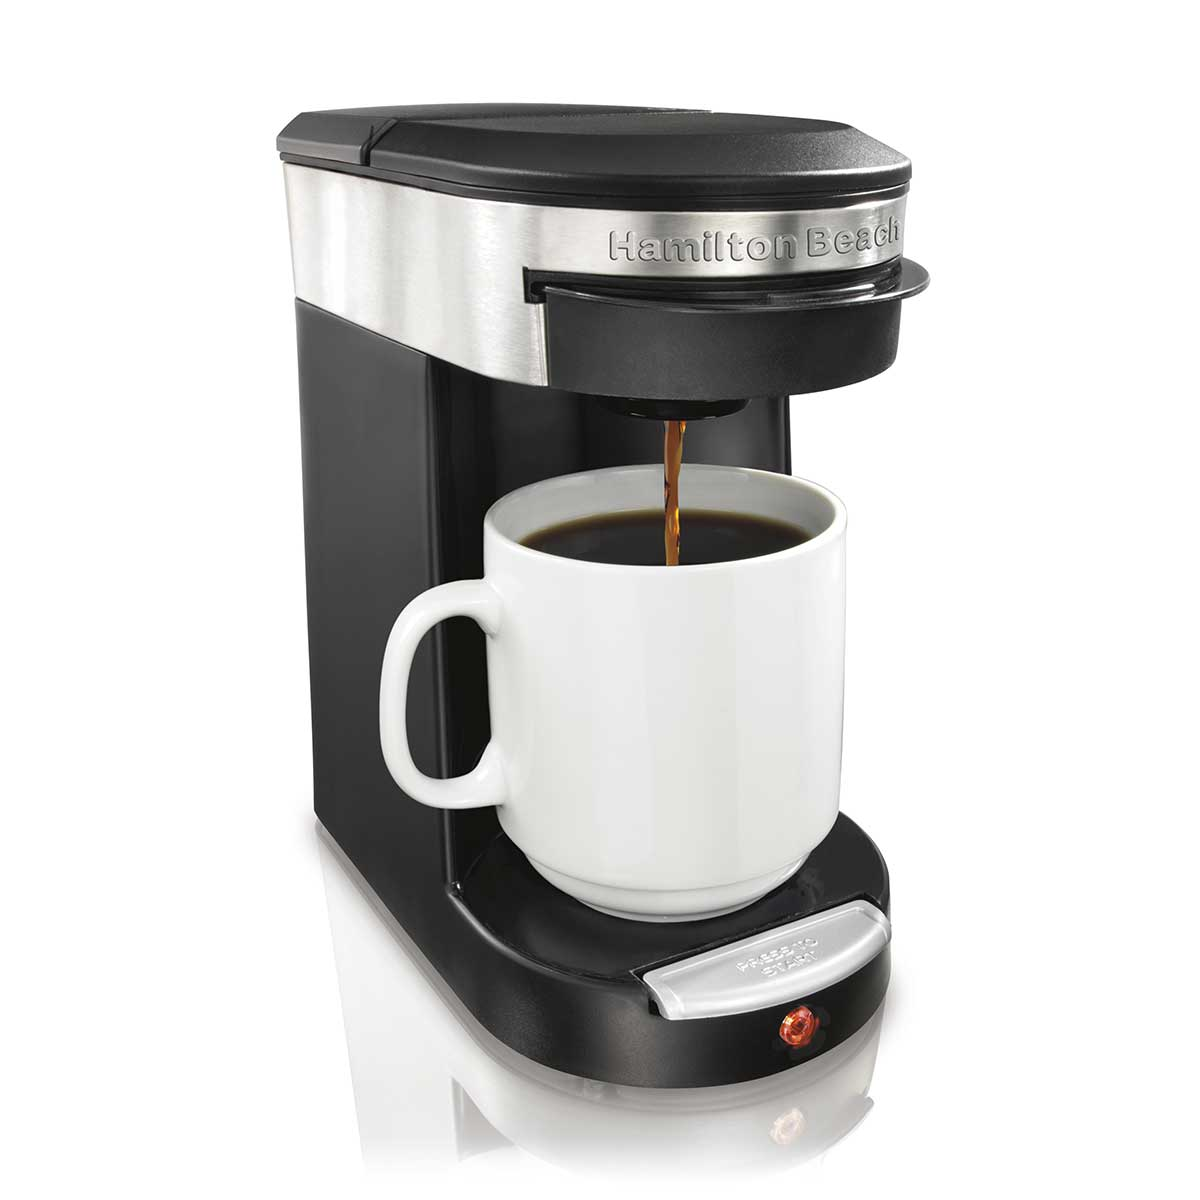 1-Cup Coffee Maker for Coffee Pods, Black (49970)